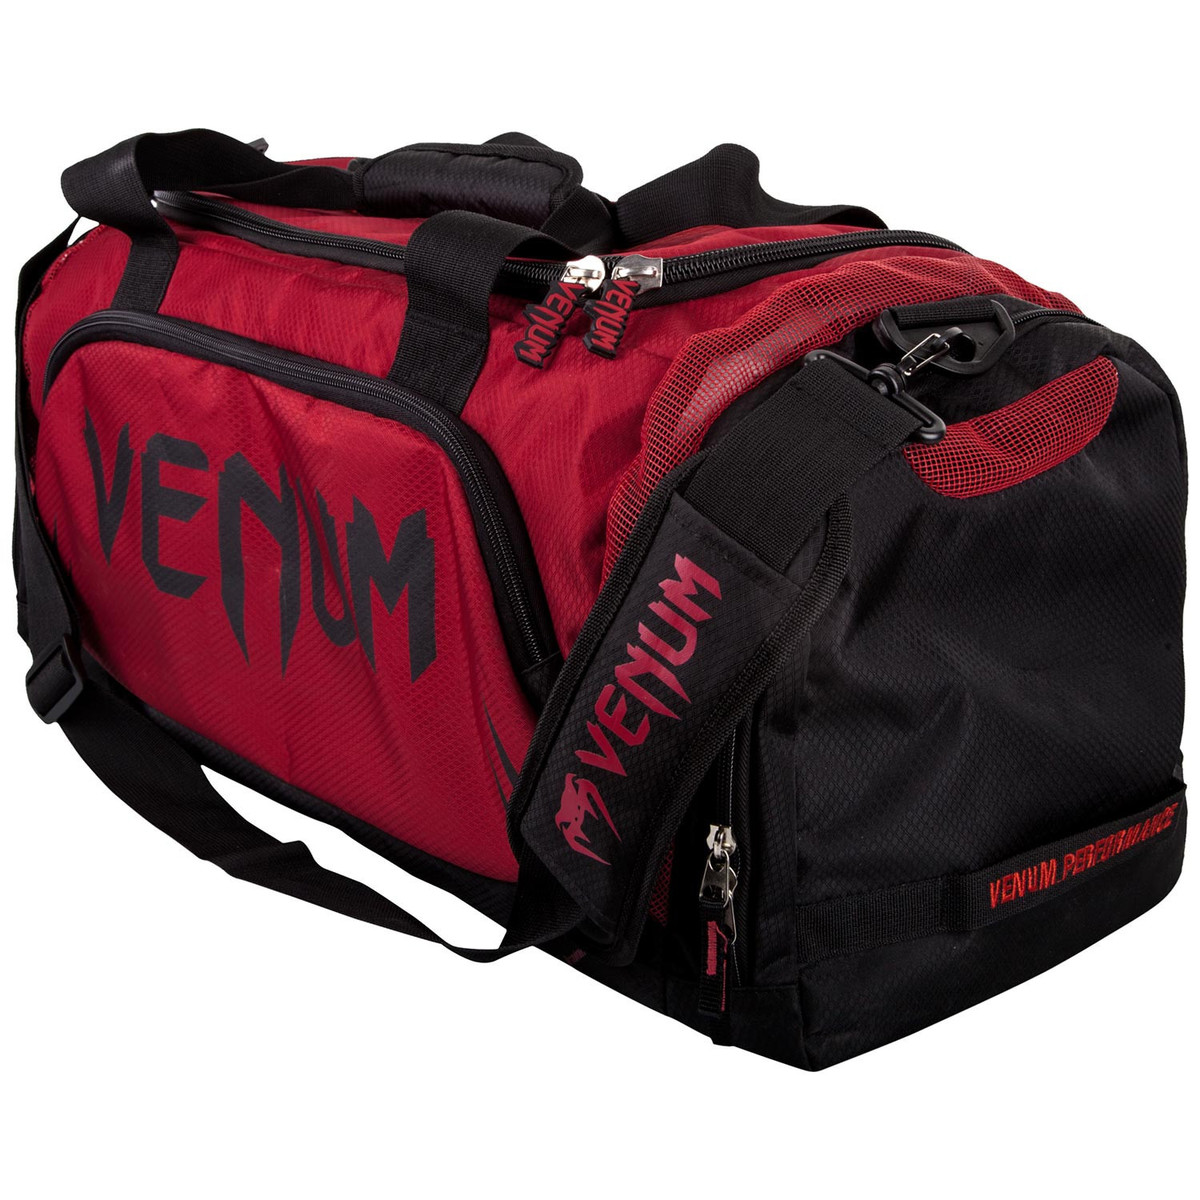 taška Venum - Trainer - Red - EU-VENUM-2123-RED